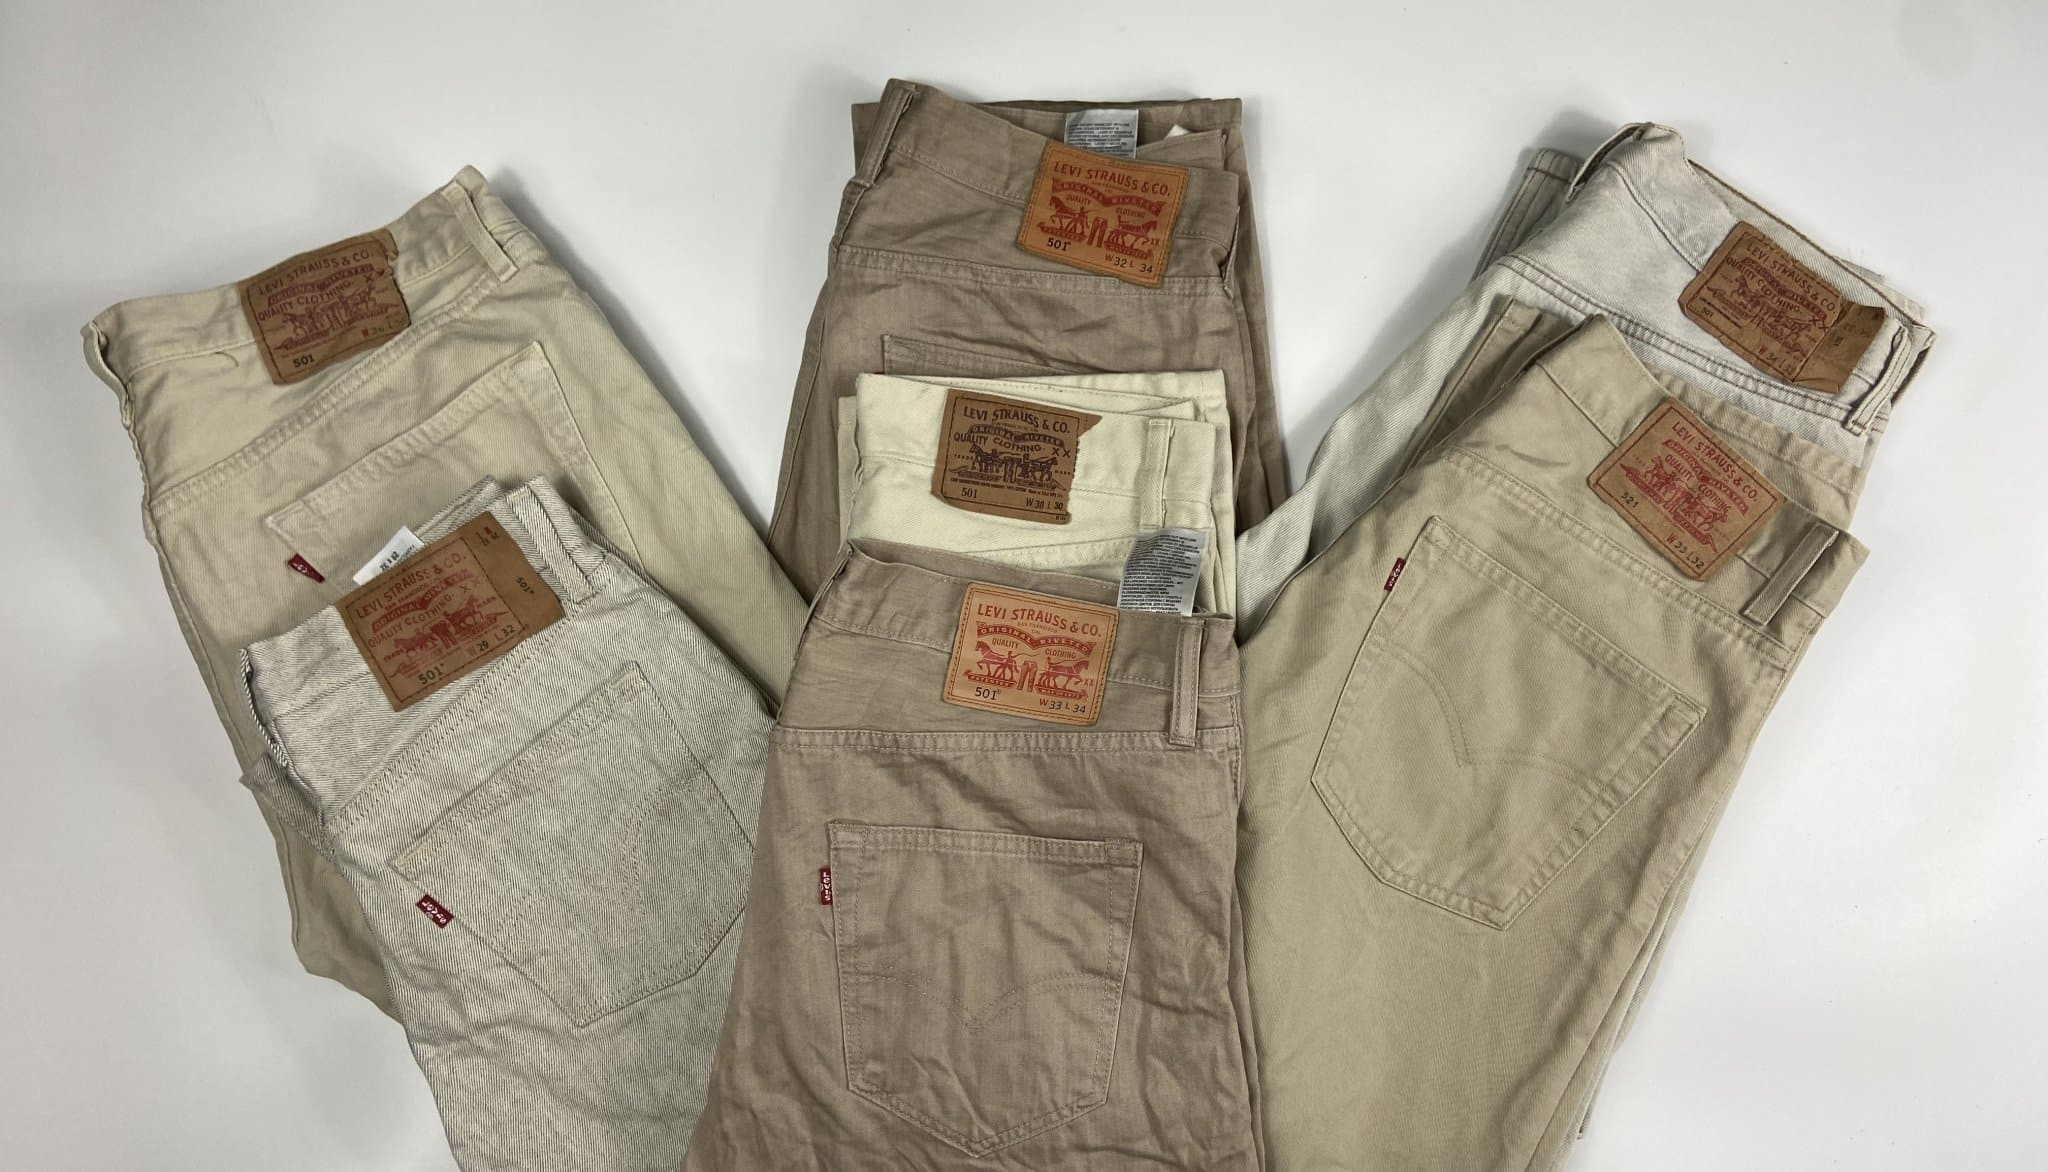 Vintage Levi's Classic Beige/Cream 501 Jeans W33 L34 (BE1) - Discounted Deals UK